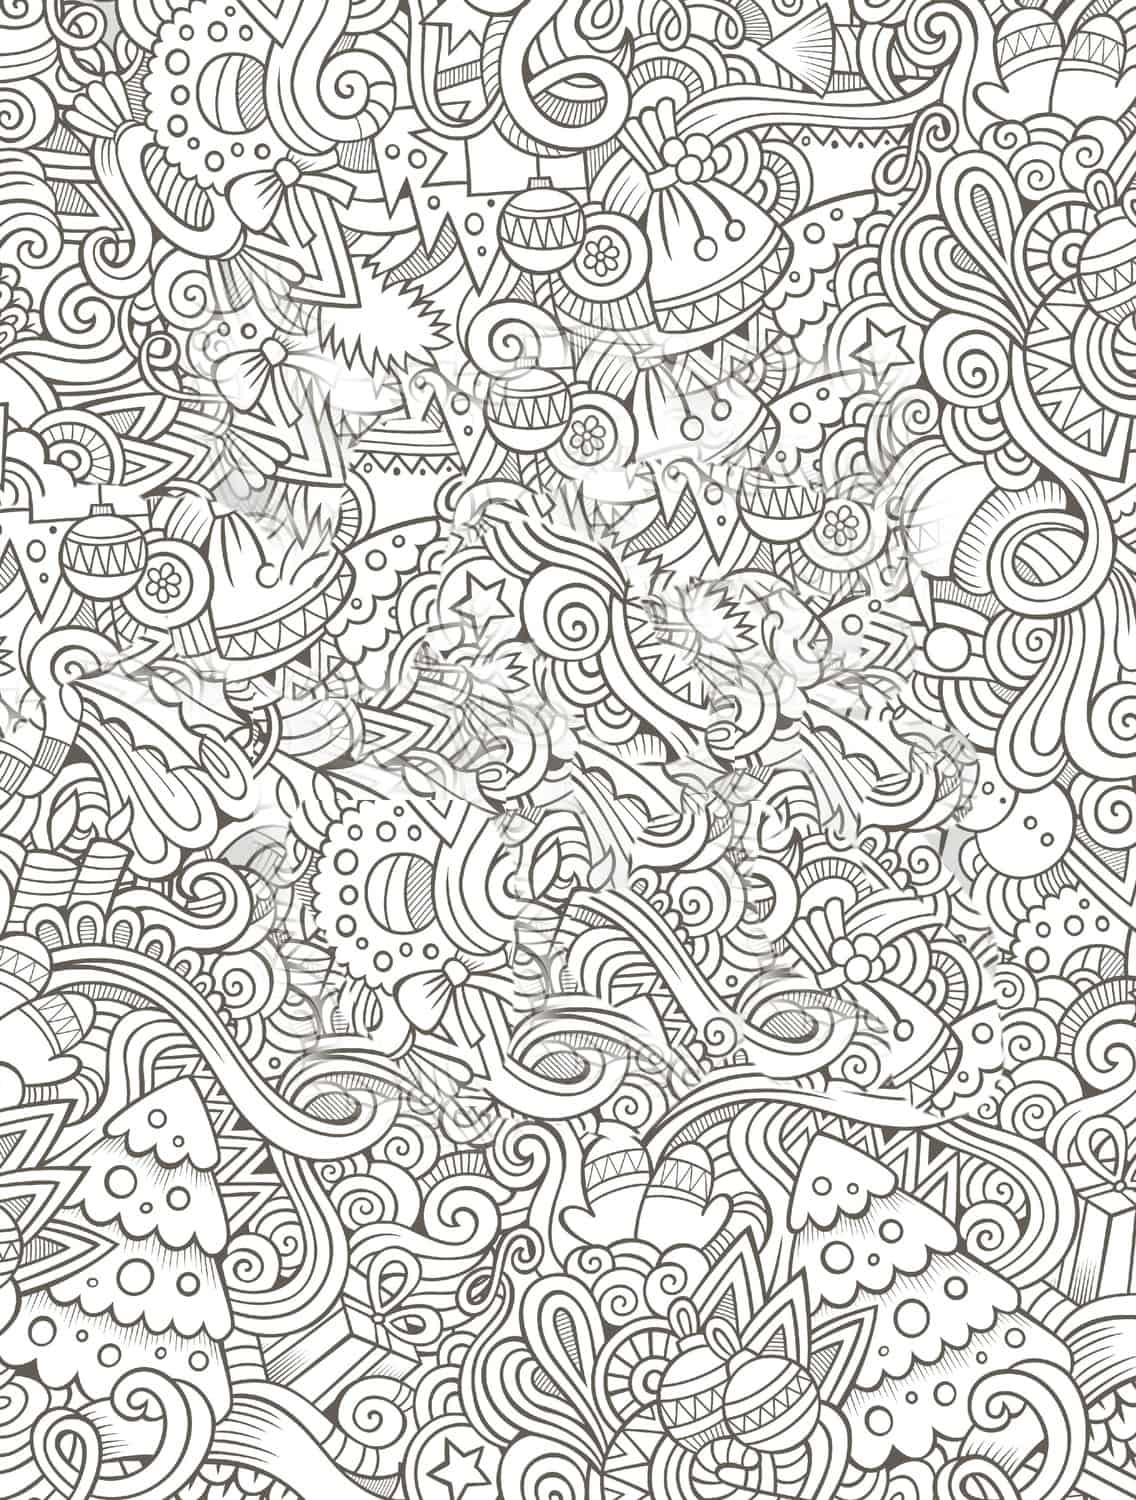 busy coloring page for free christmas gift small - Free Printable Coloring Pages